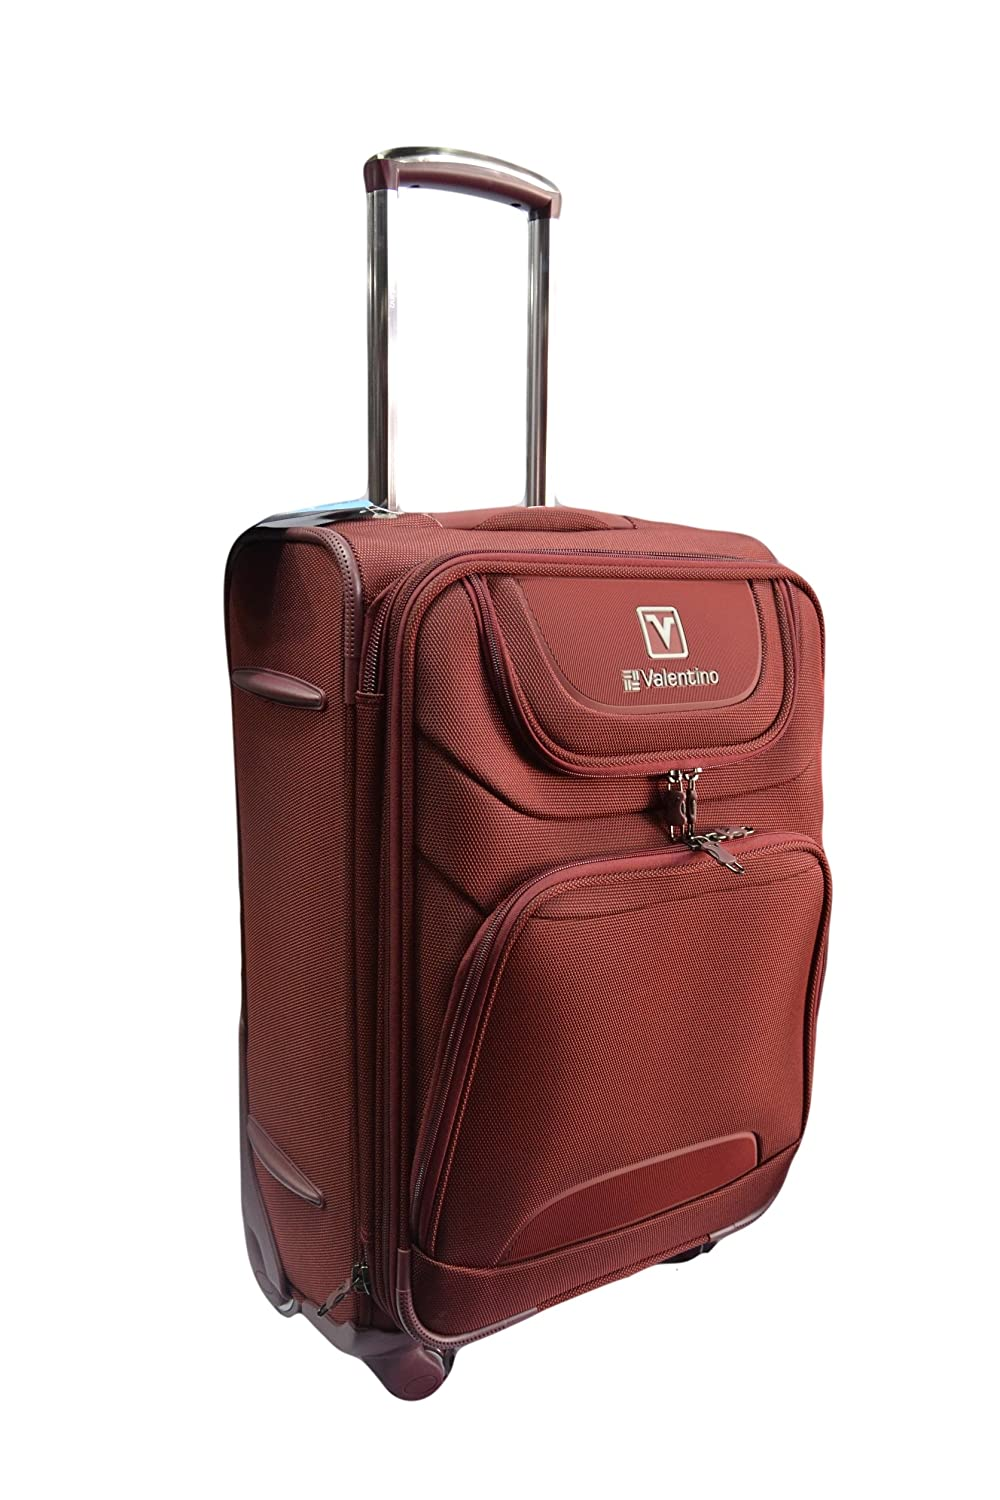 399a57f4d51 Valentino LP 4 WHEEL-20 INCH-Red: Amazon.in: Bags, Wallets & Luggage